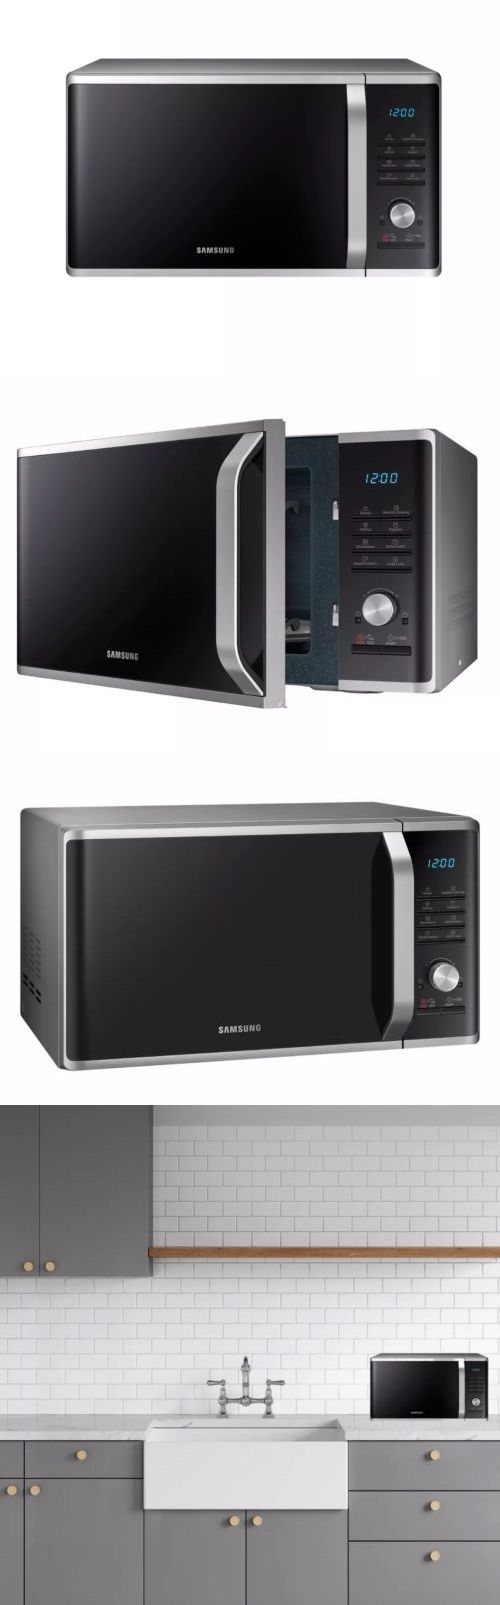 stainless steel oven microwave oven